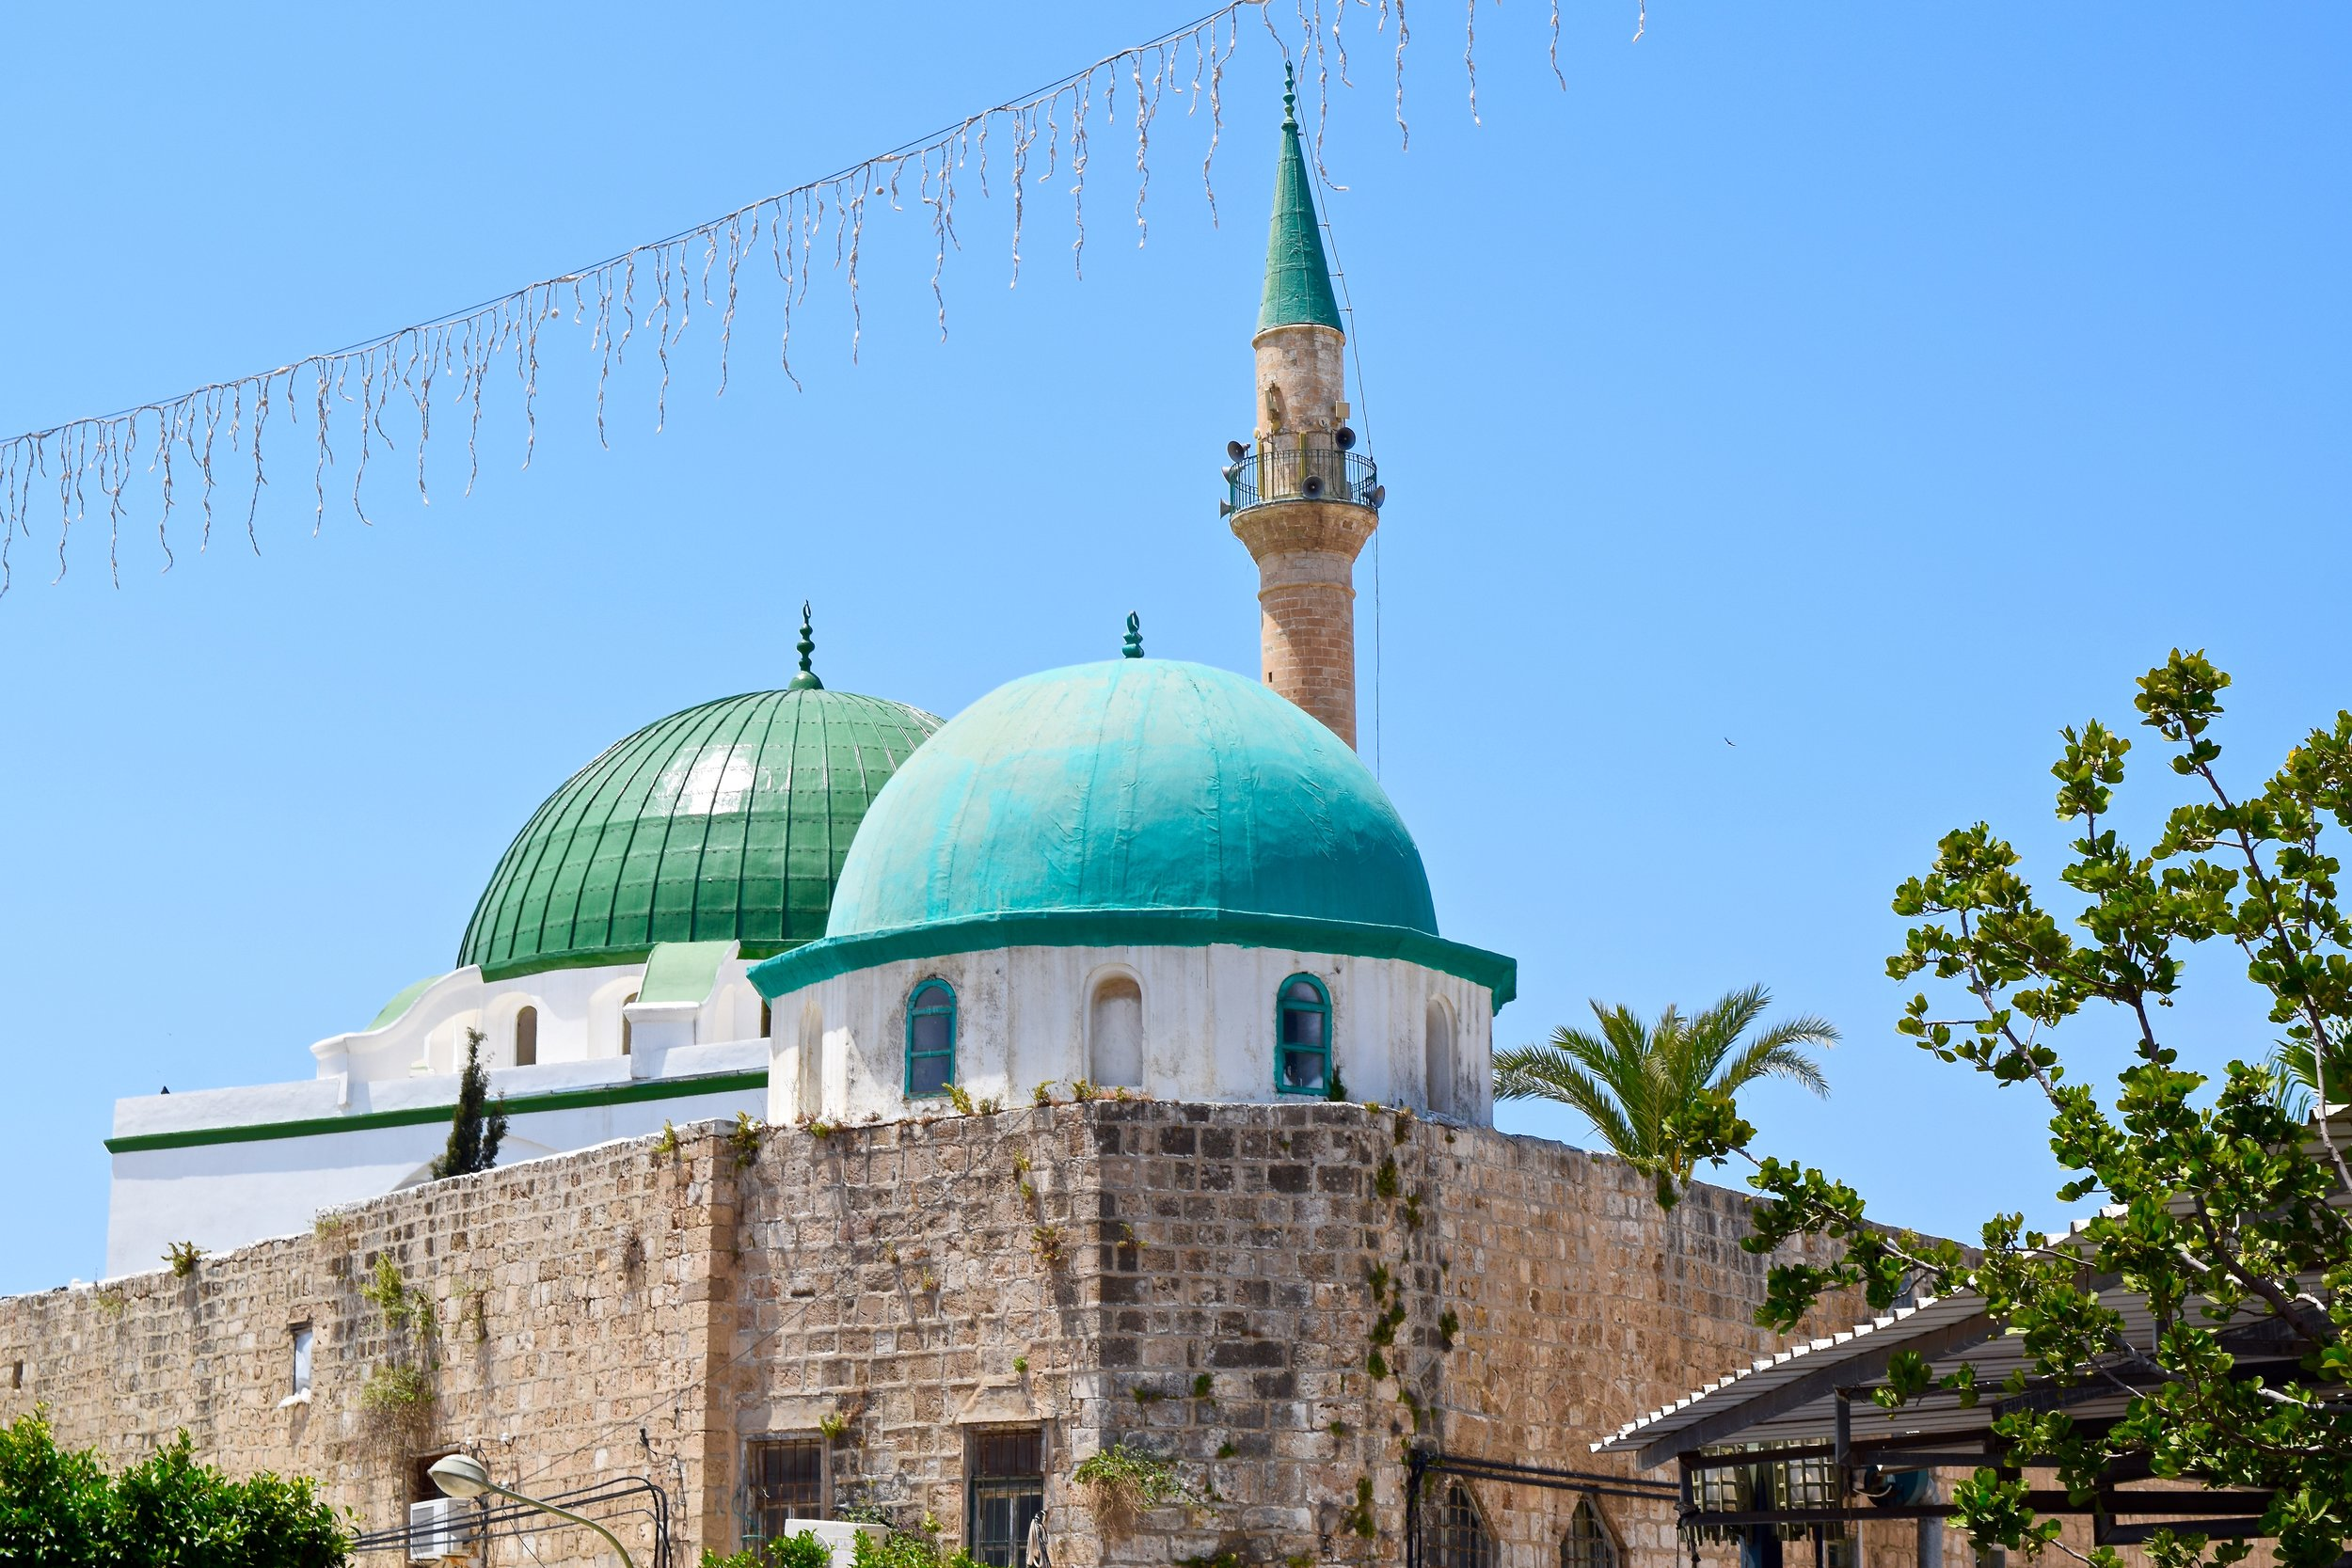 Old City of Acre & Ahmed el-Jazzar Mosque